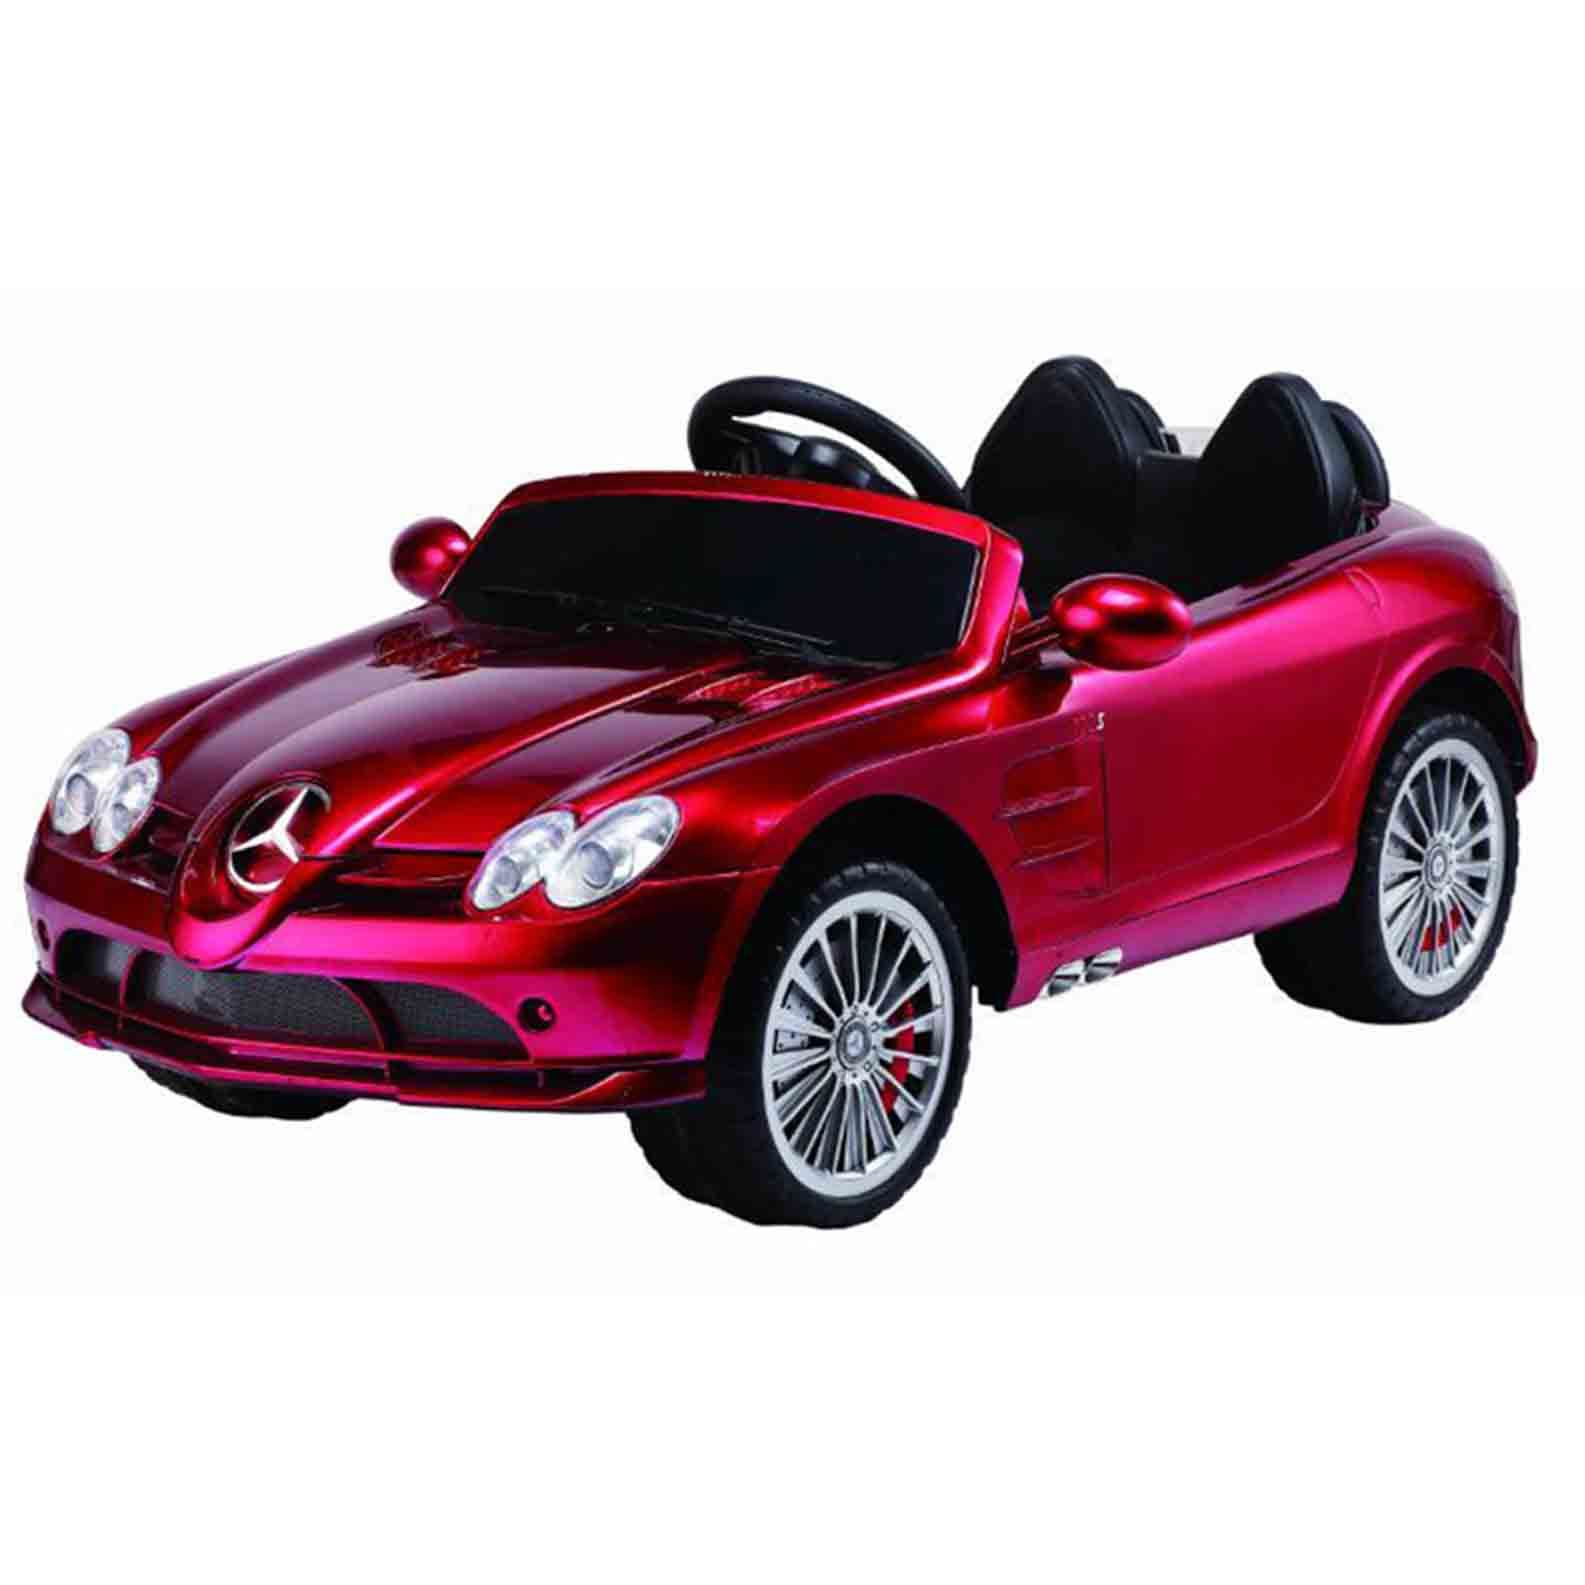 china new licensed mercedes benz 722s ride on car 12v baby remote control toys cars electric toy battery powered electric china baby toys